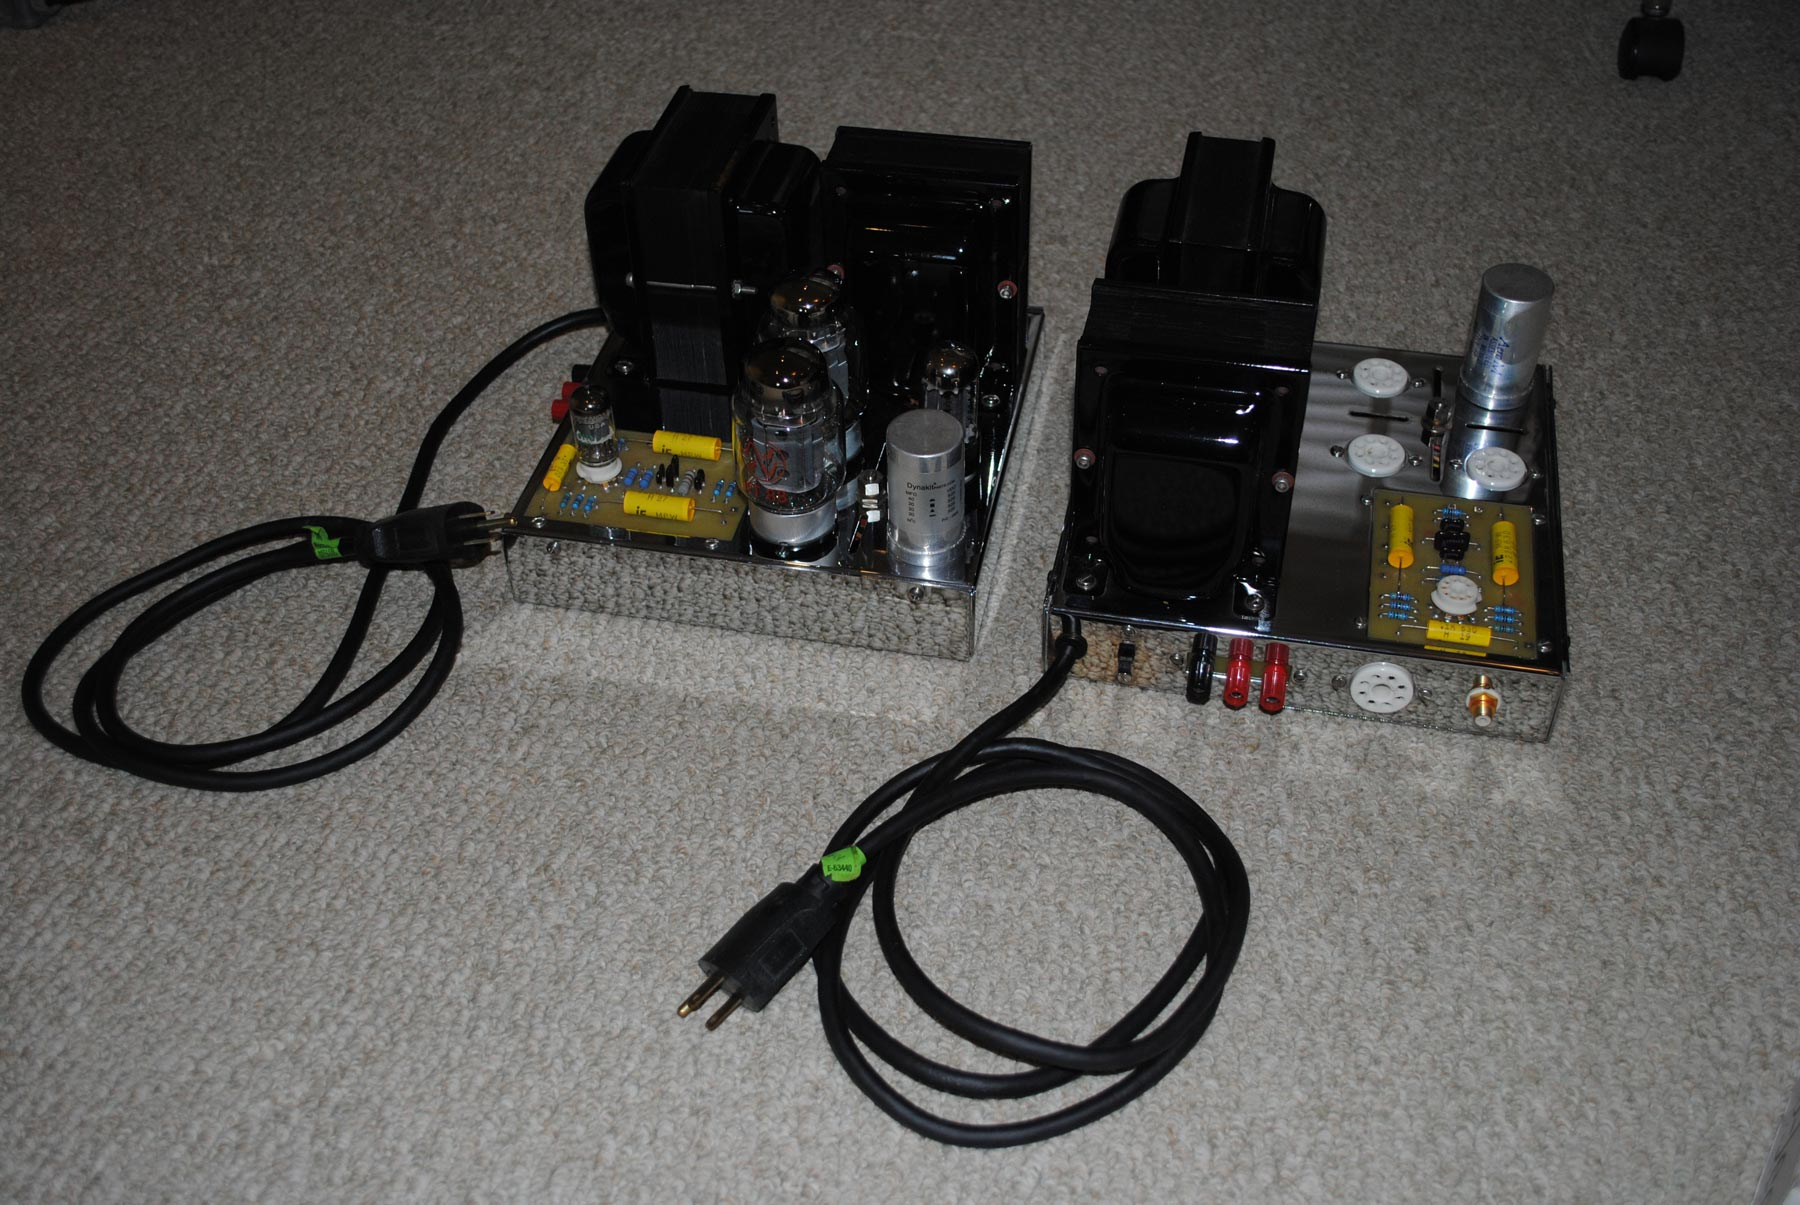 MK III Amps (pre-owned)